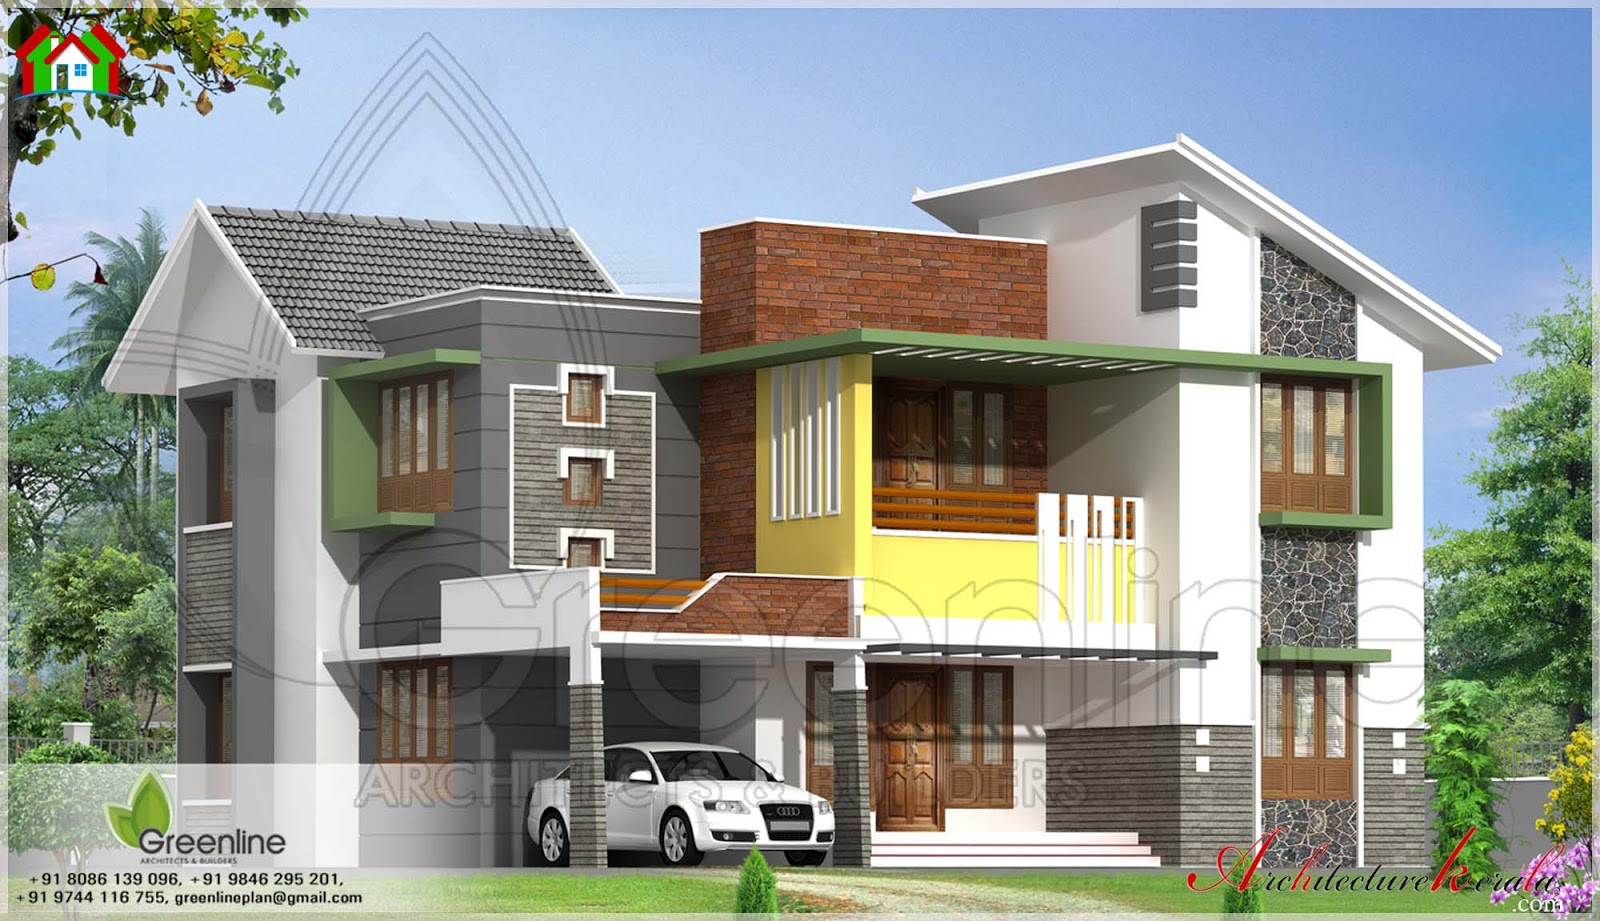 Modern style house elevation architecture kerala for Contemporary style homes in kerala